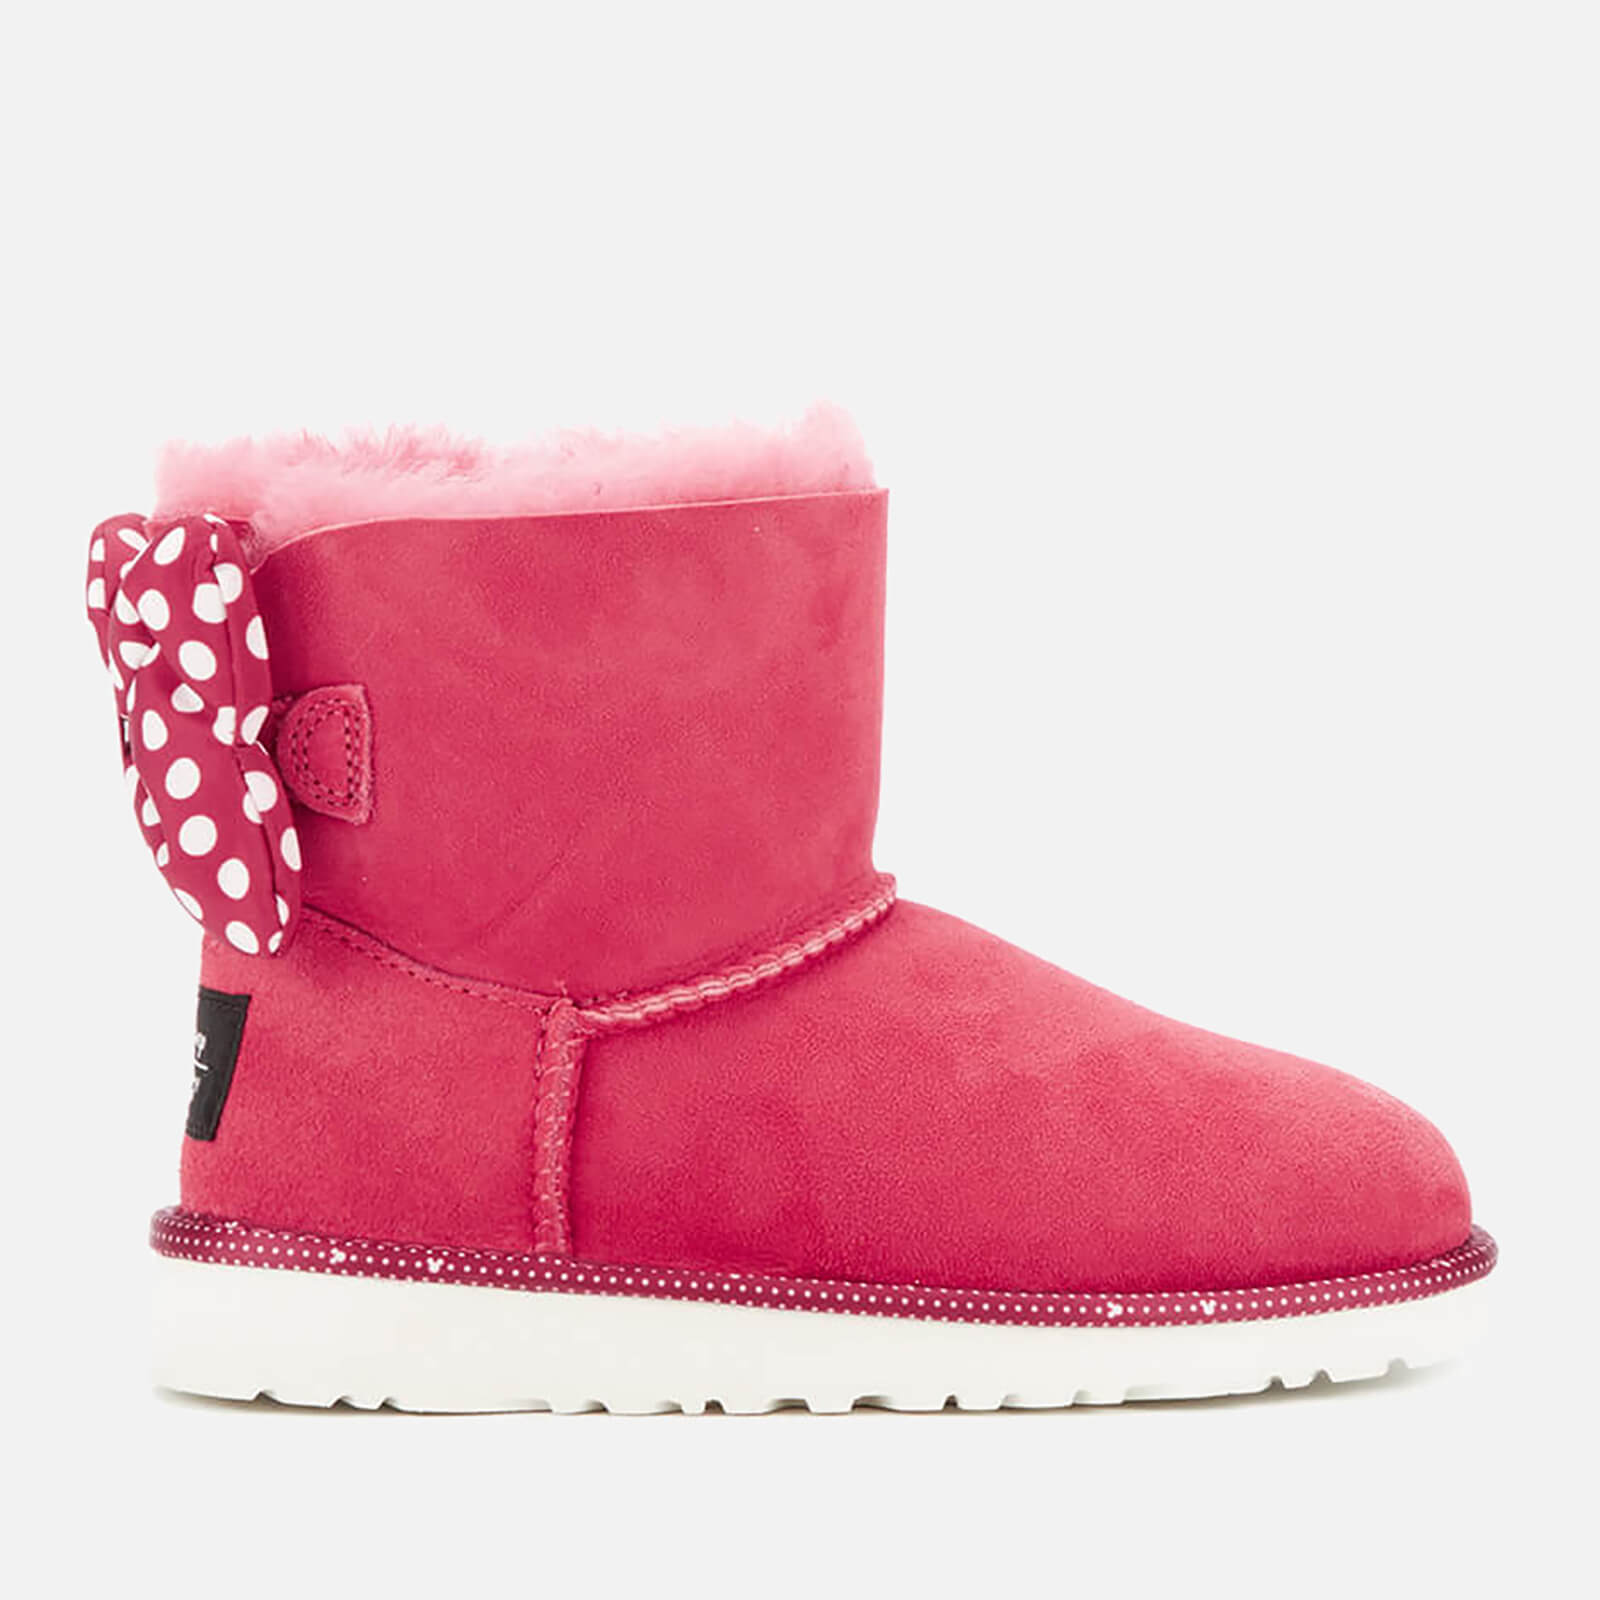 4b87c0cca1d UGG Kids' Sweetie Bow Disney Boots - Red